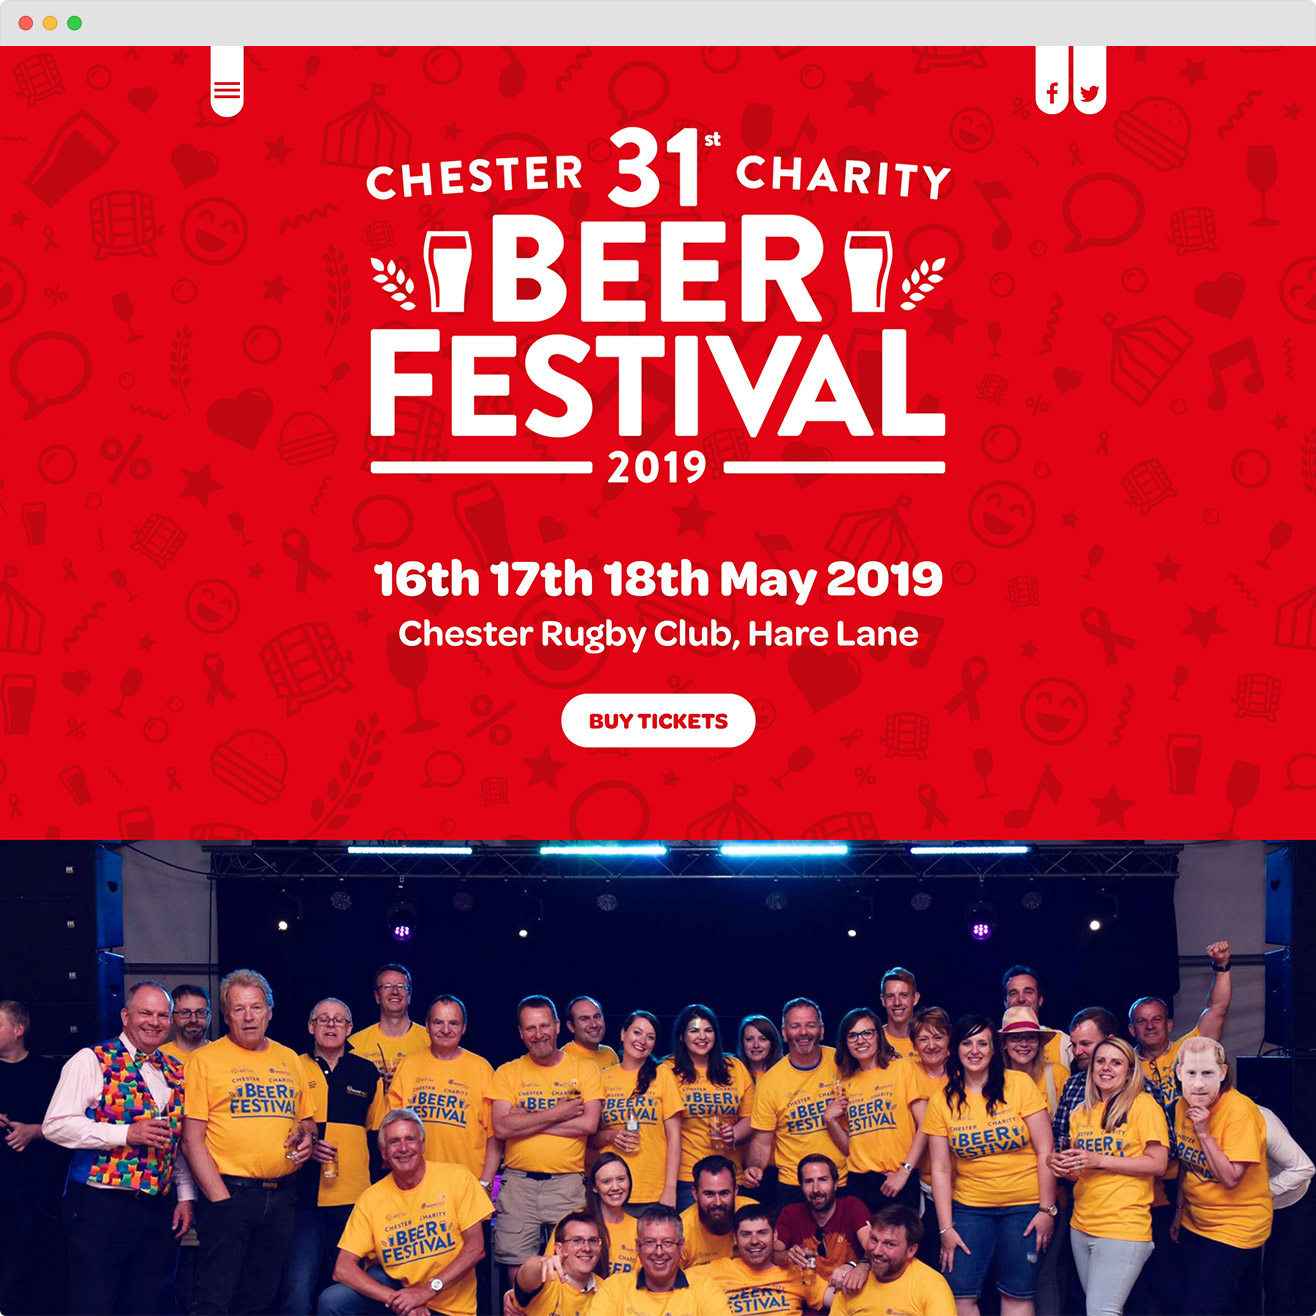 Chester Charity Beer Festival Website Design